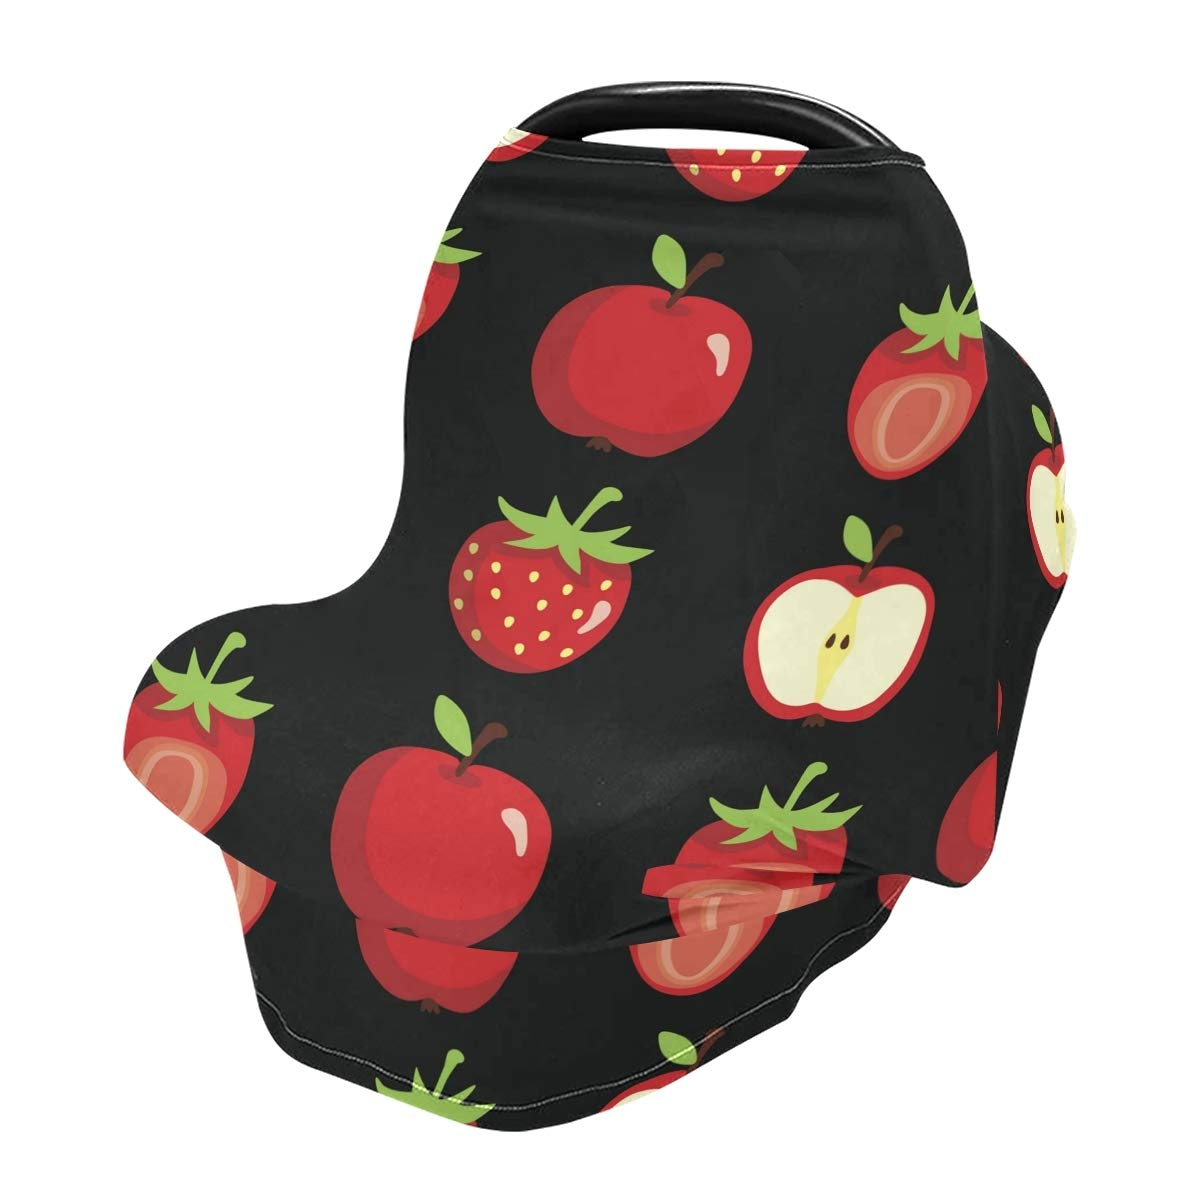 Strawberry and Apples Nursing Cover Car Seat Covers Breastfeeding Scarf for Babies Infant Stretchy Soft Breathable Multi-Use Cover Ups, Gift for Boys Girls